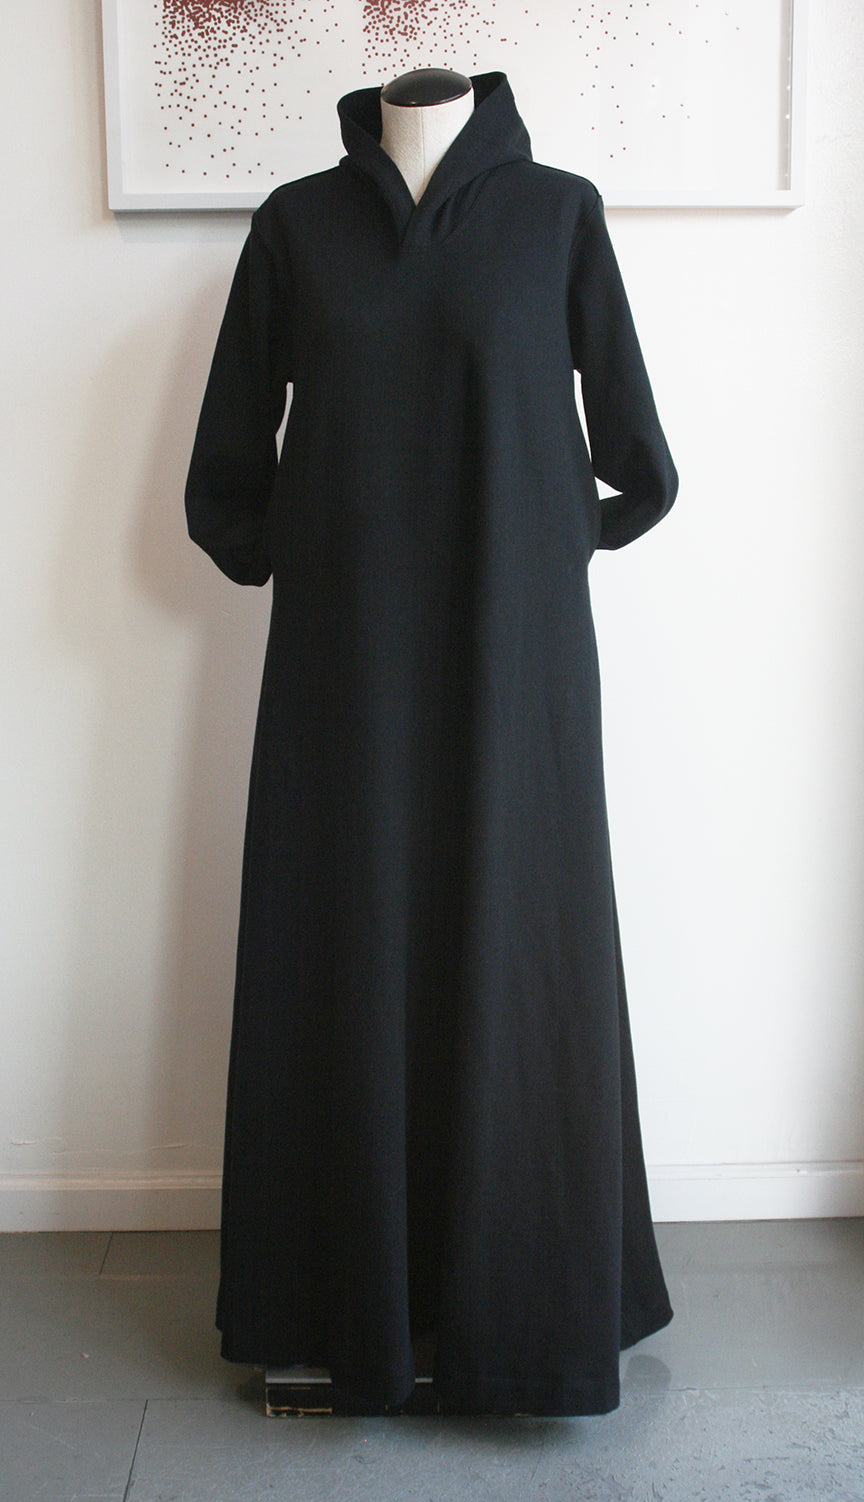 Hoody Dress, black organic cotton fleece